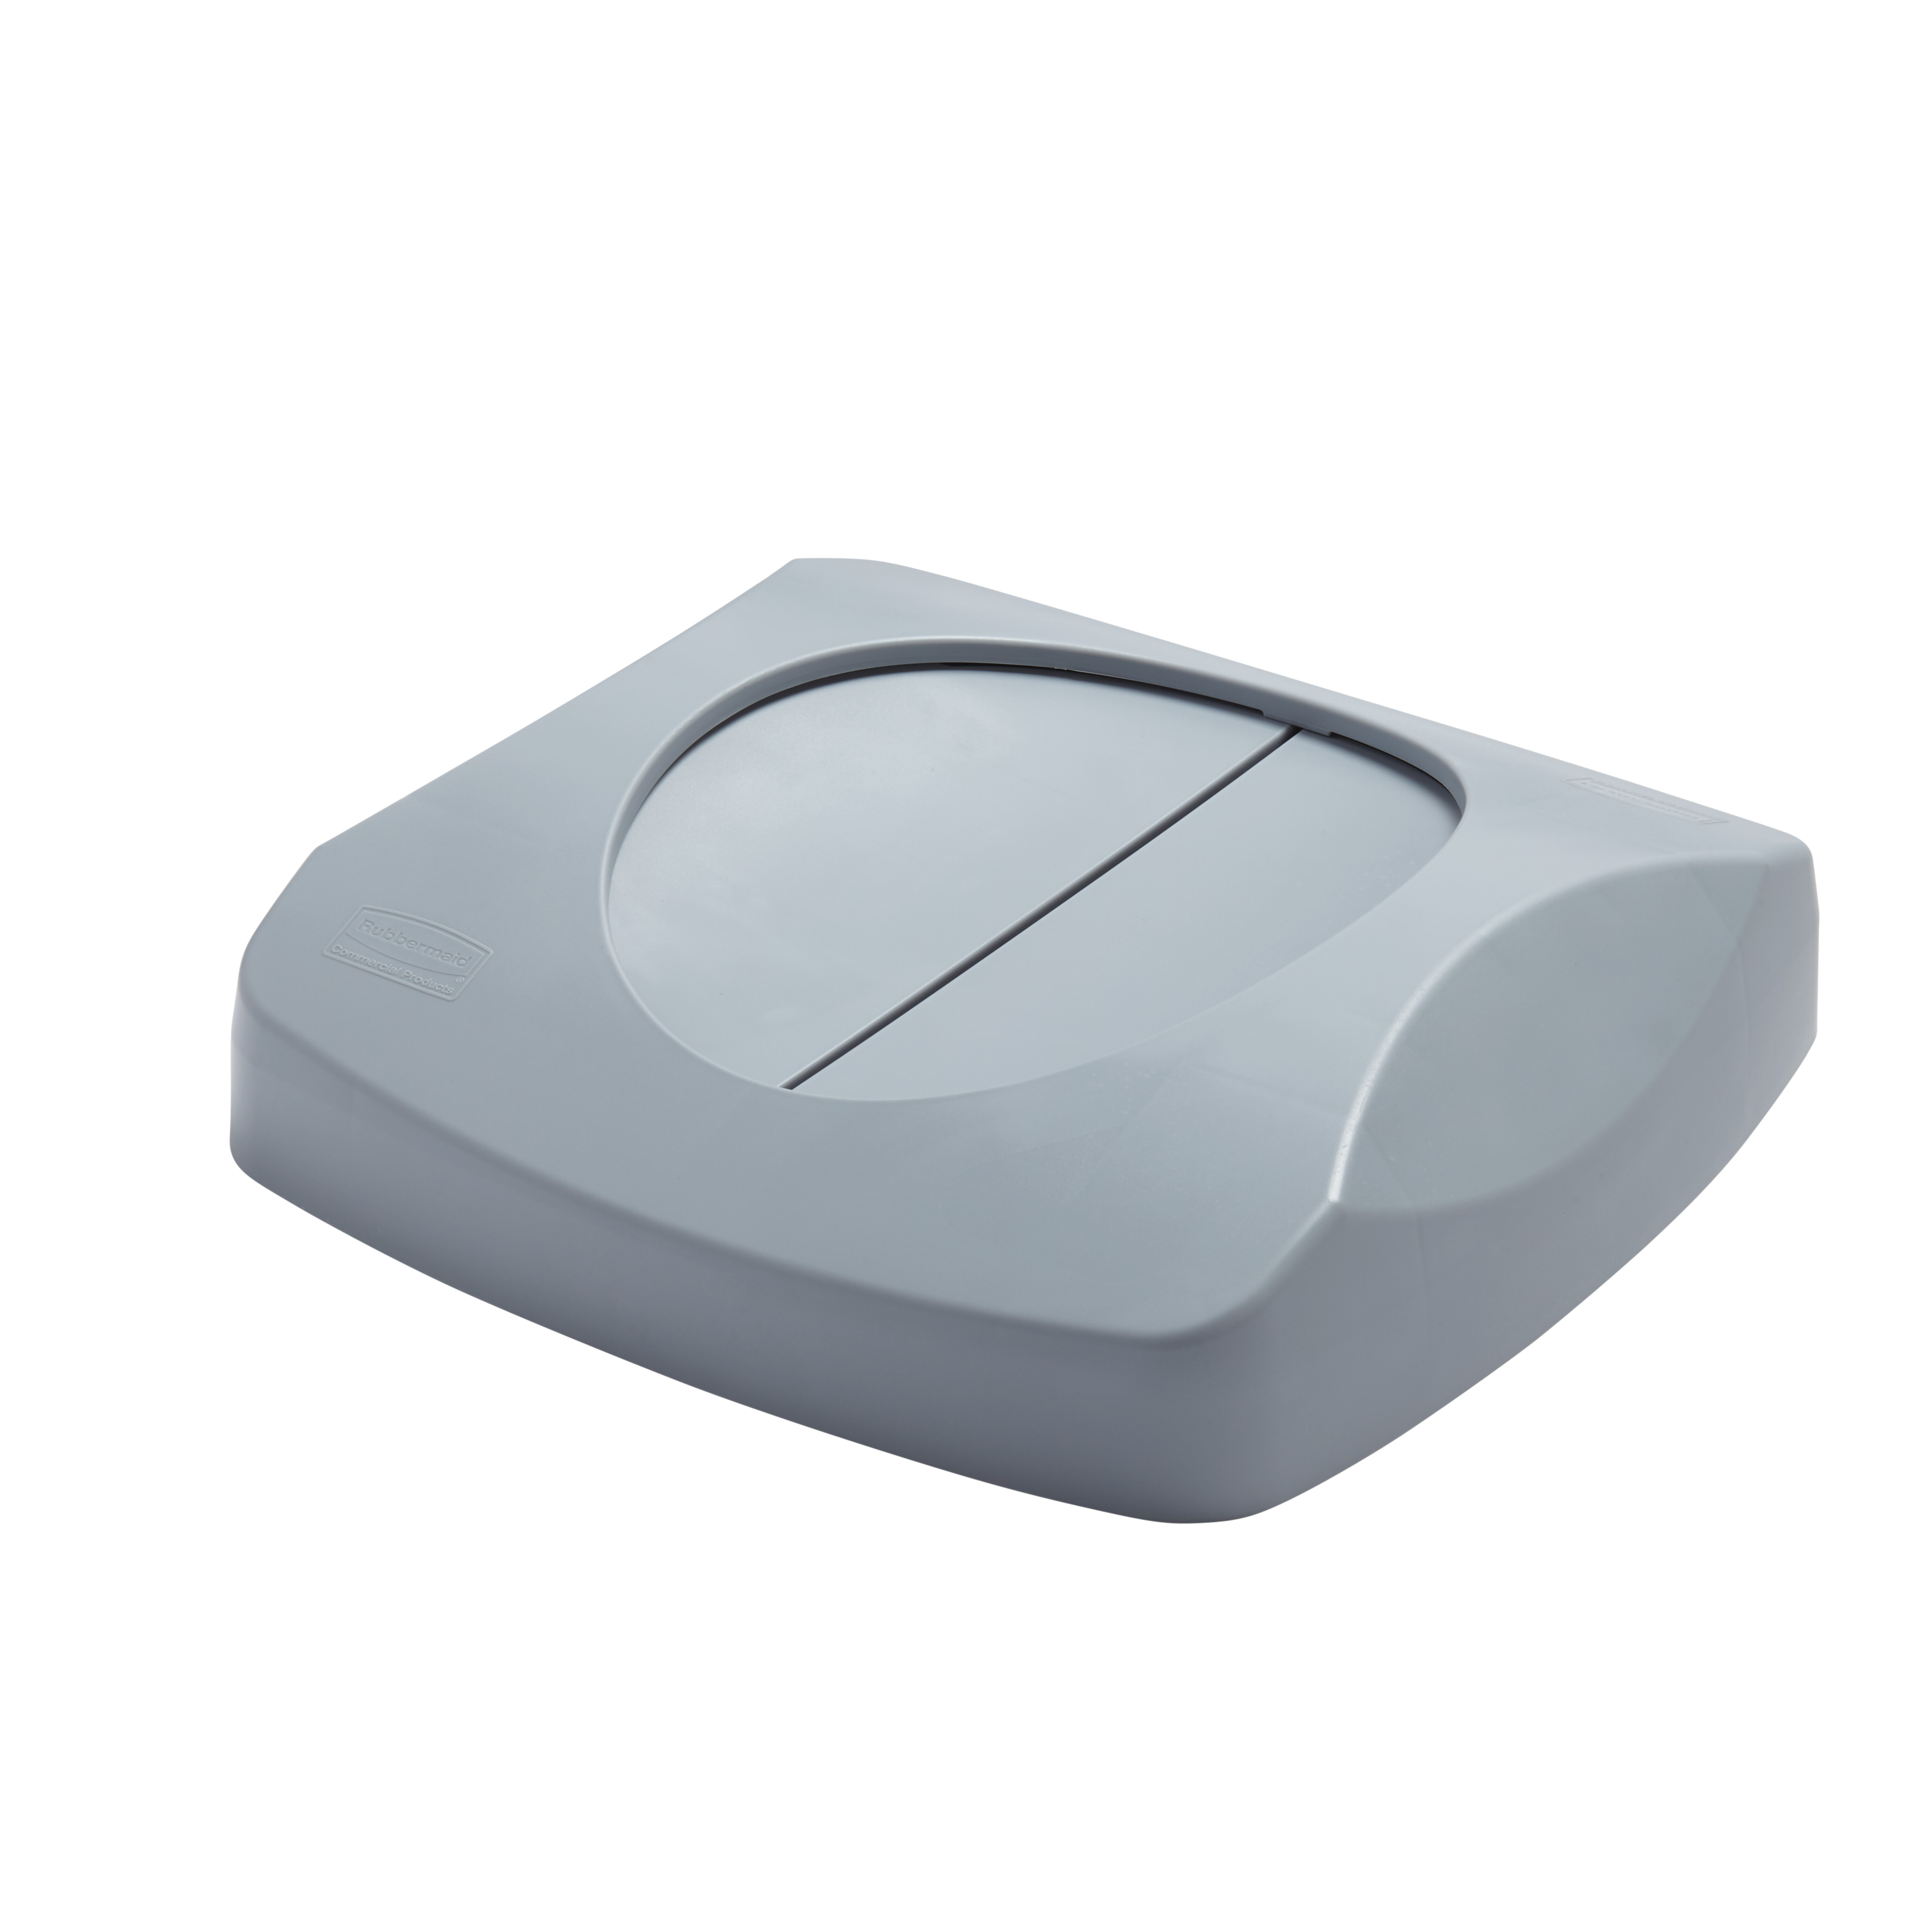 Rubbermaid Commercial Products FG268988GRAY trash receptacle lid / top